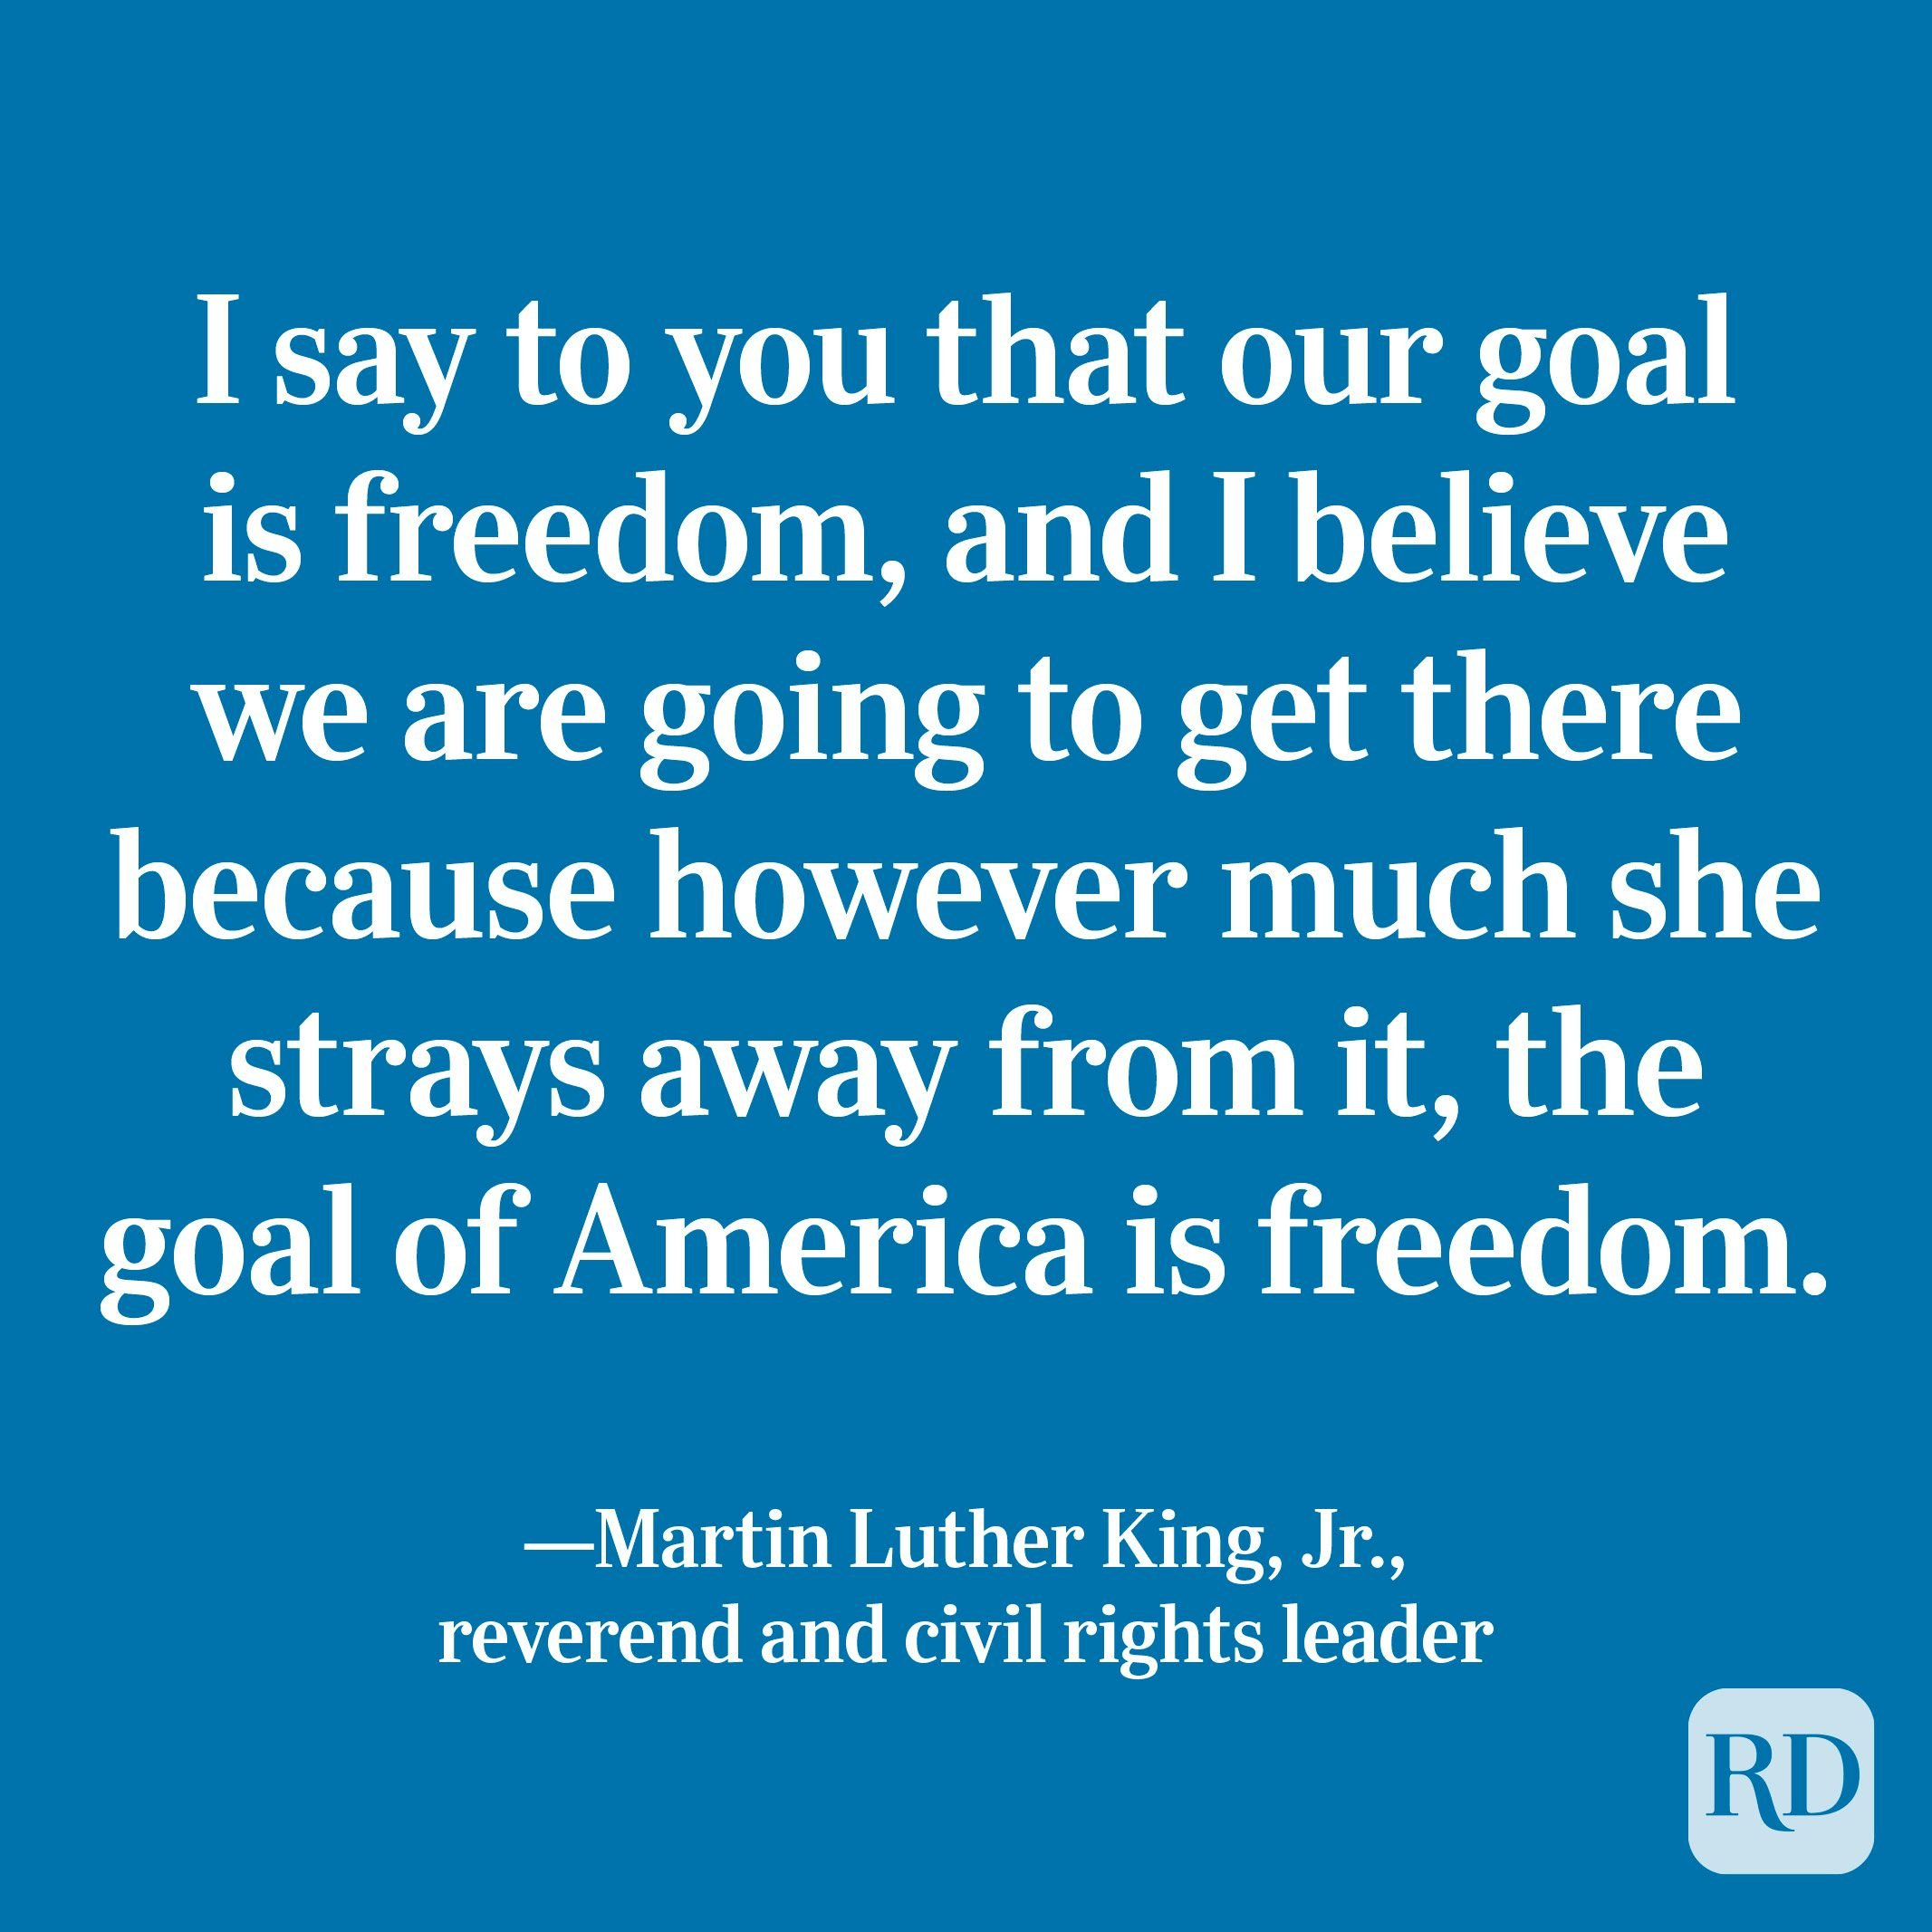 """""""I say to you that our goal is freedom, and I believe we are going to get there because however much she strays away from it, the goal of America is freedom."""" —Martin Luther King, Jr., reverend and civil rights leader"""